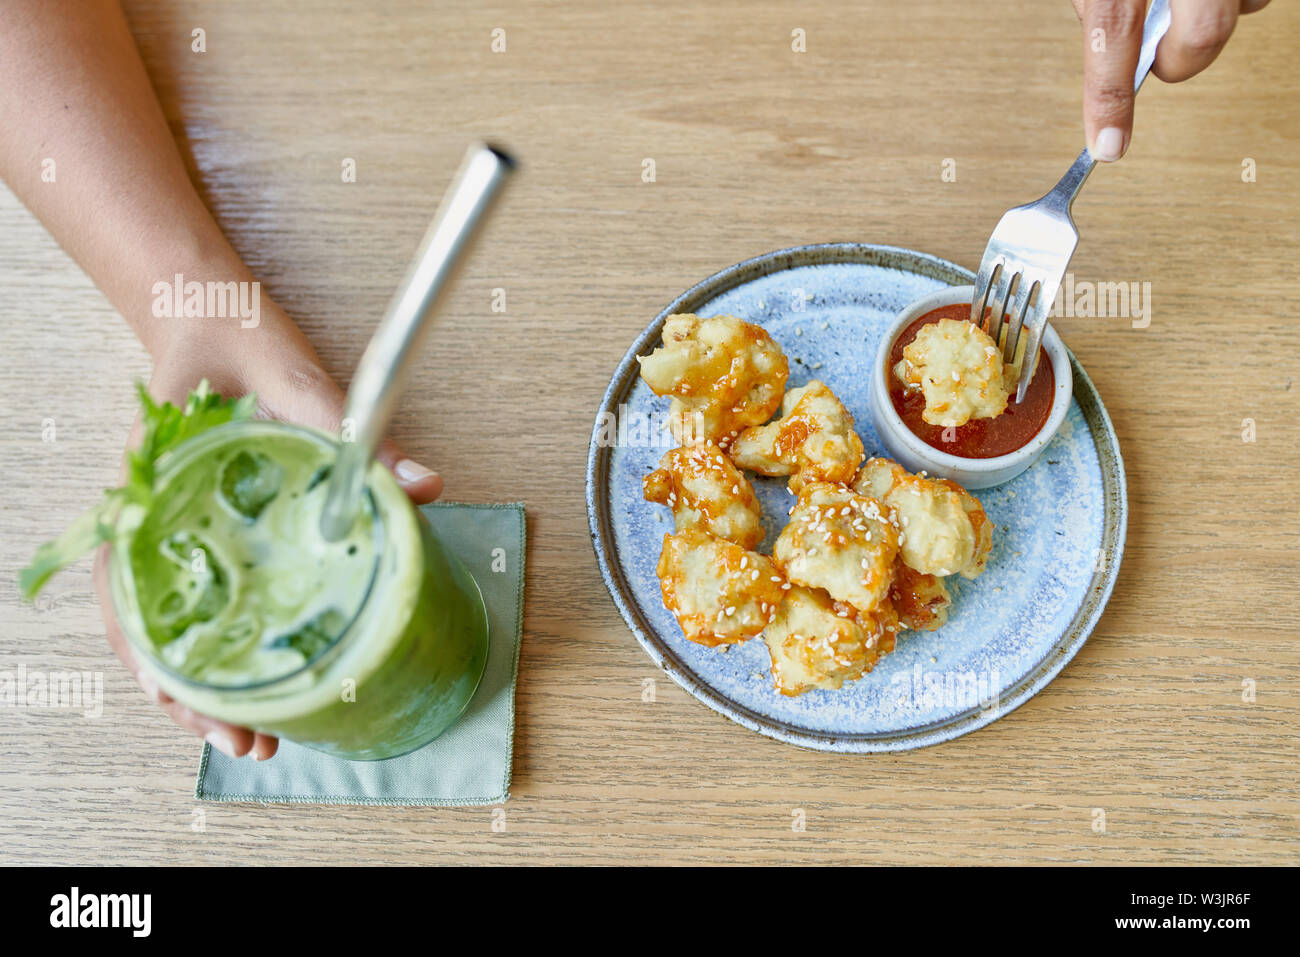 Overhead shot of tasty fine vegetarian plant-based cuisine on artisanal ceramic plate including fried cauliflower and sauce, with a green smoothie and - Stock Image